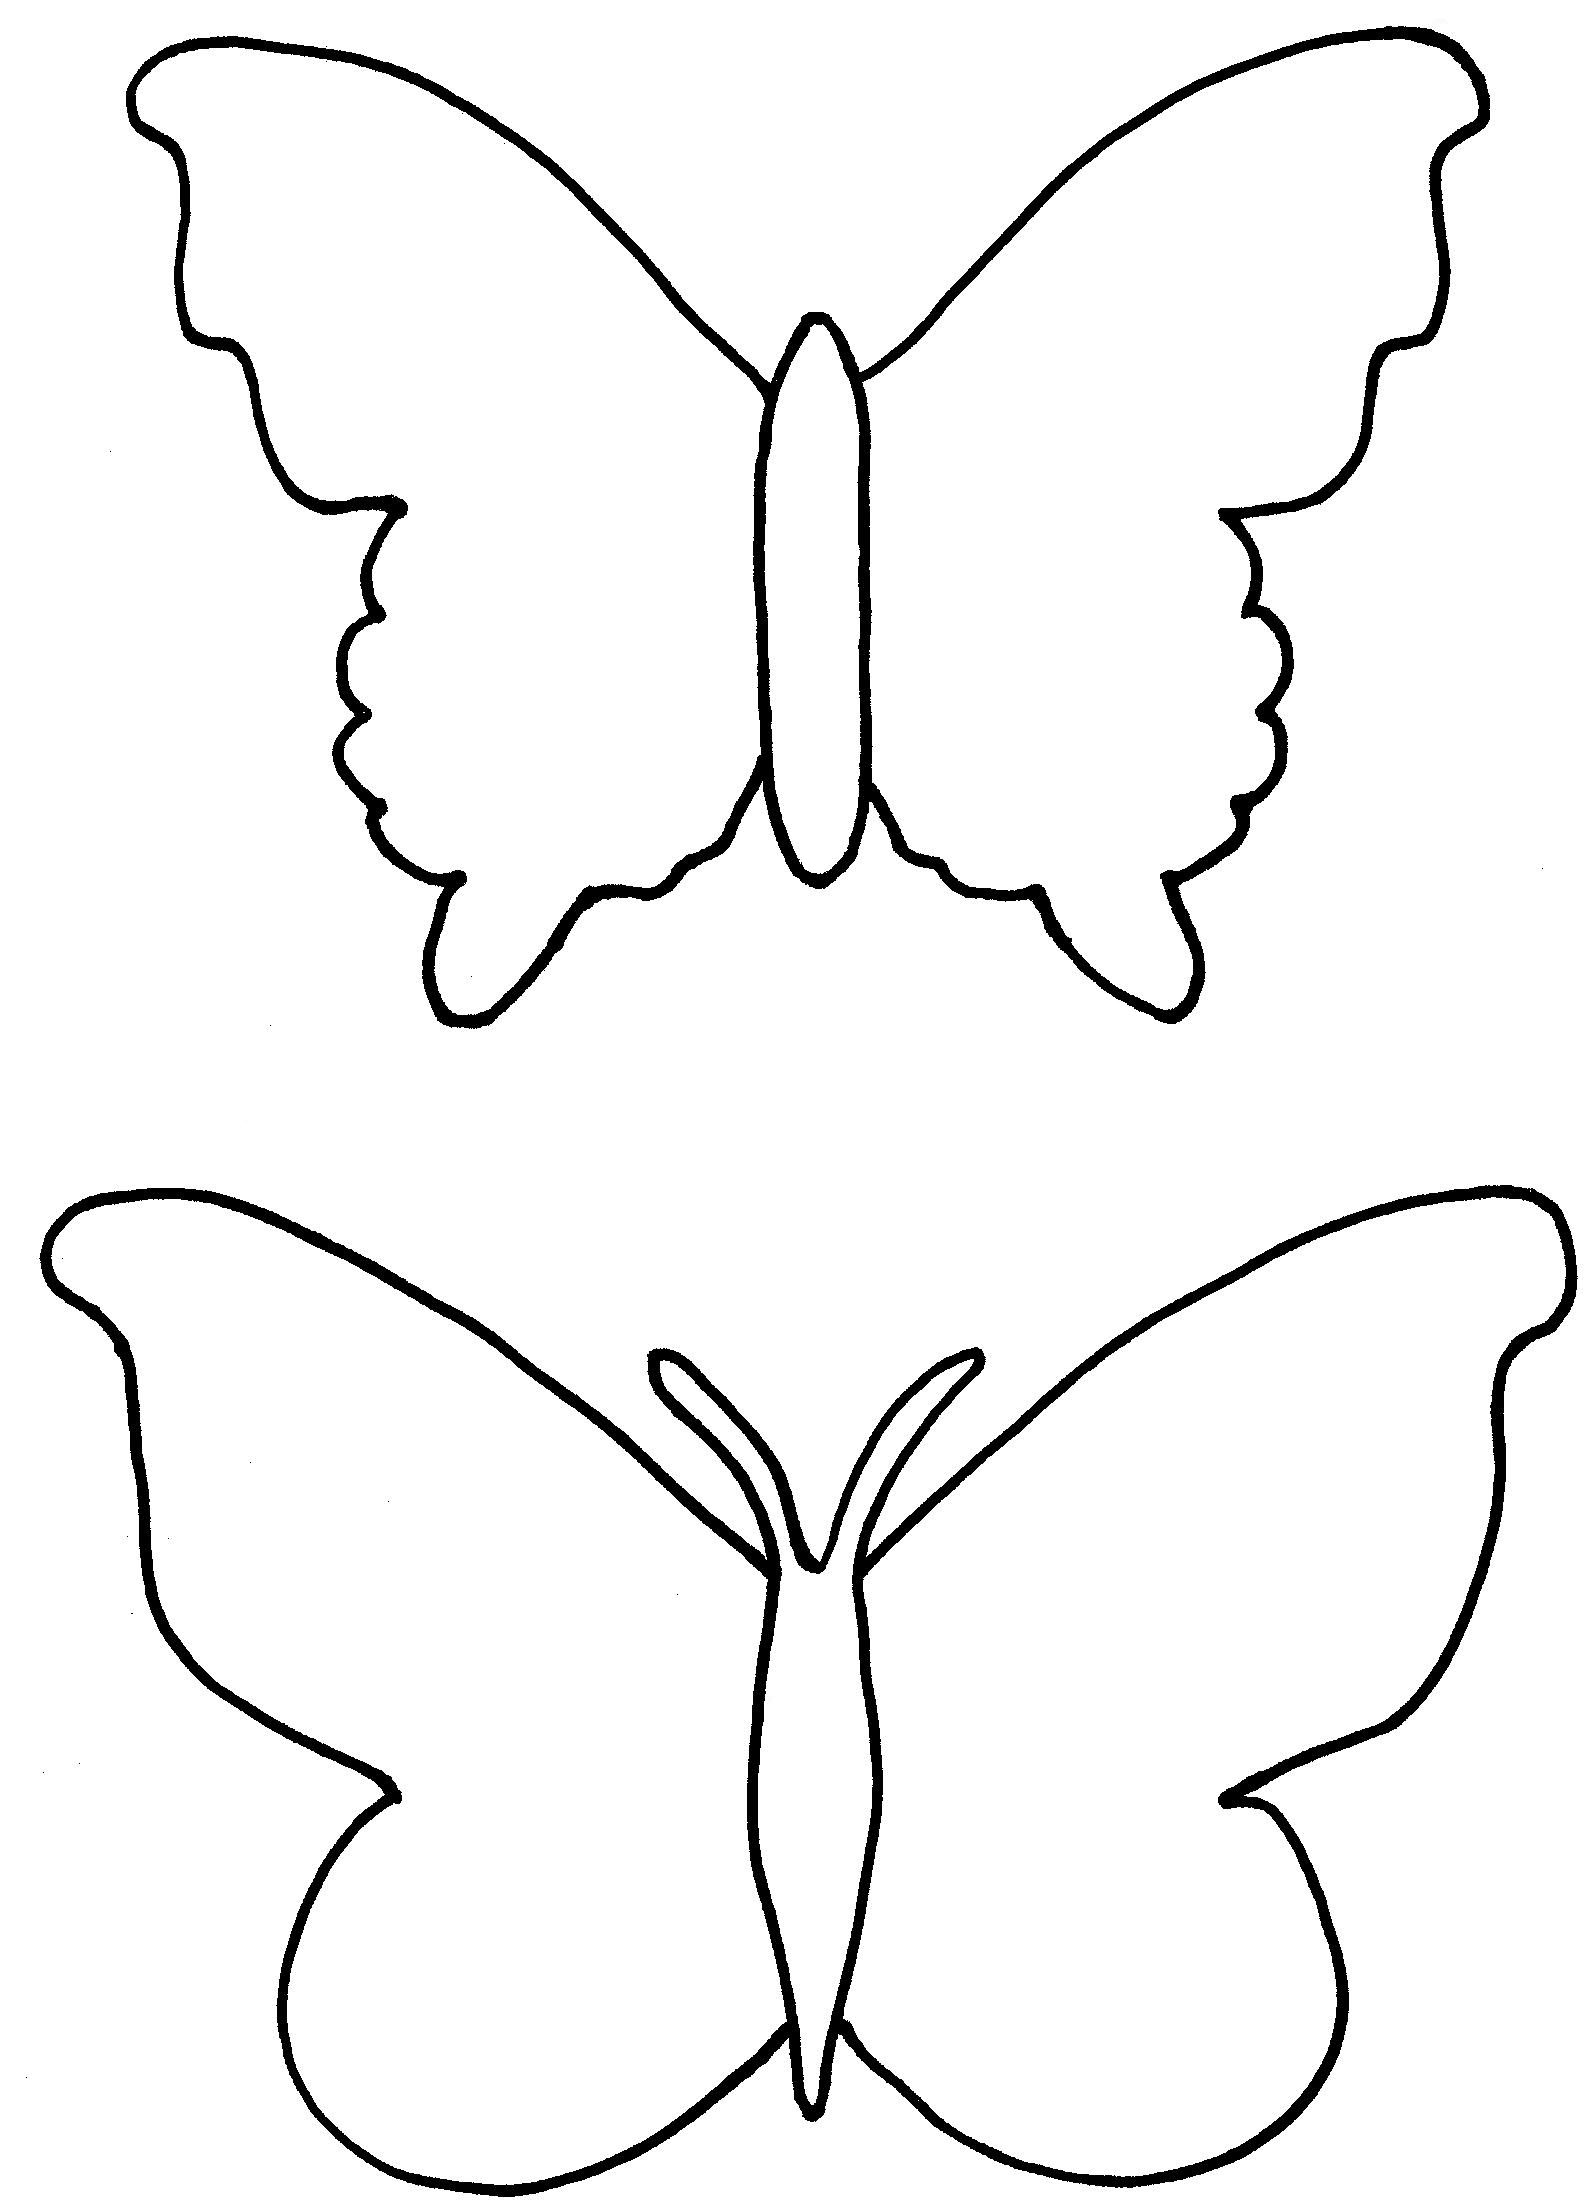 butterfly cocoon drawing at getdrawings com free for personal use